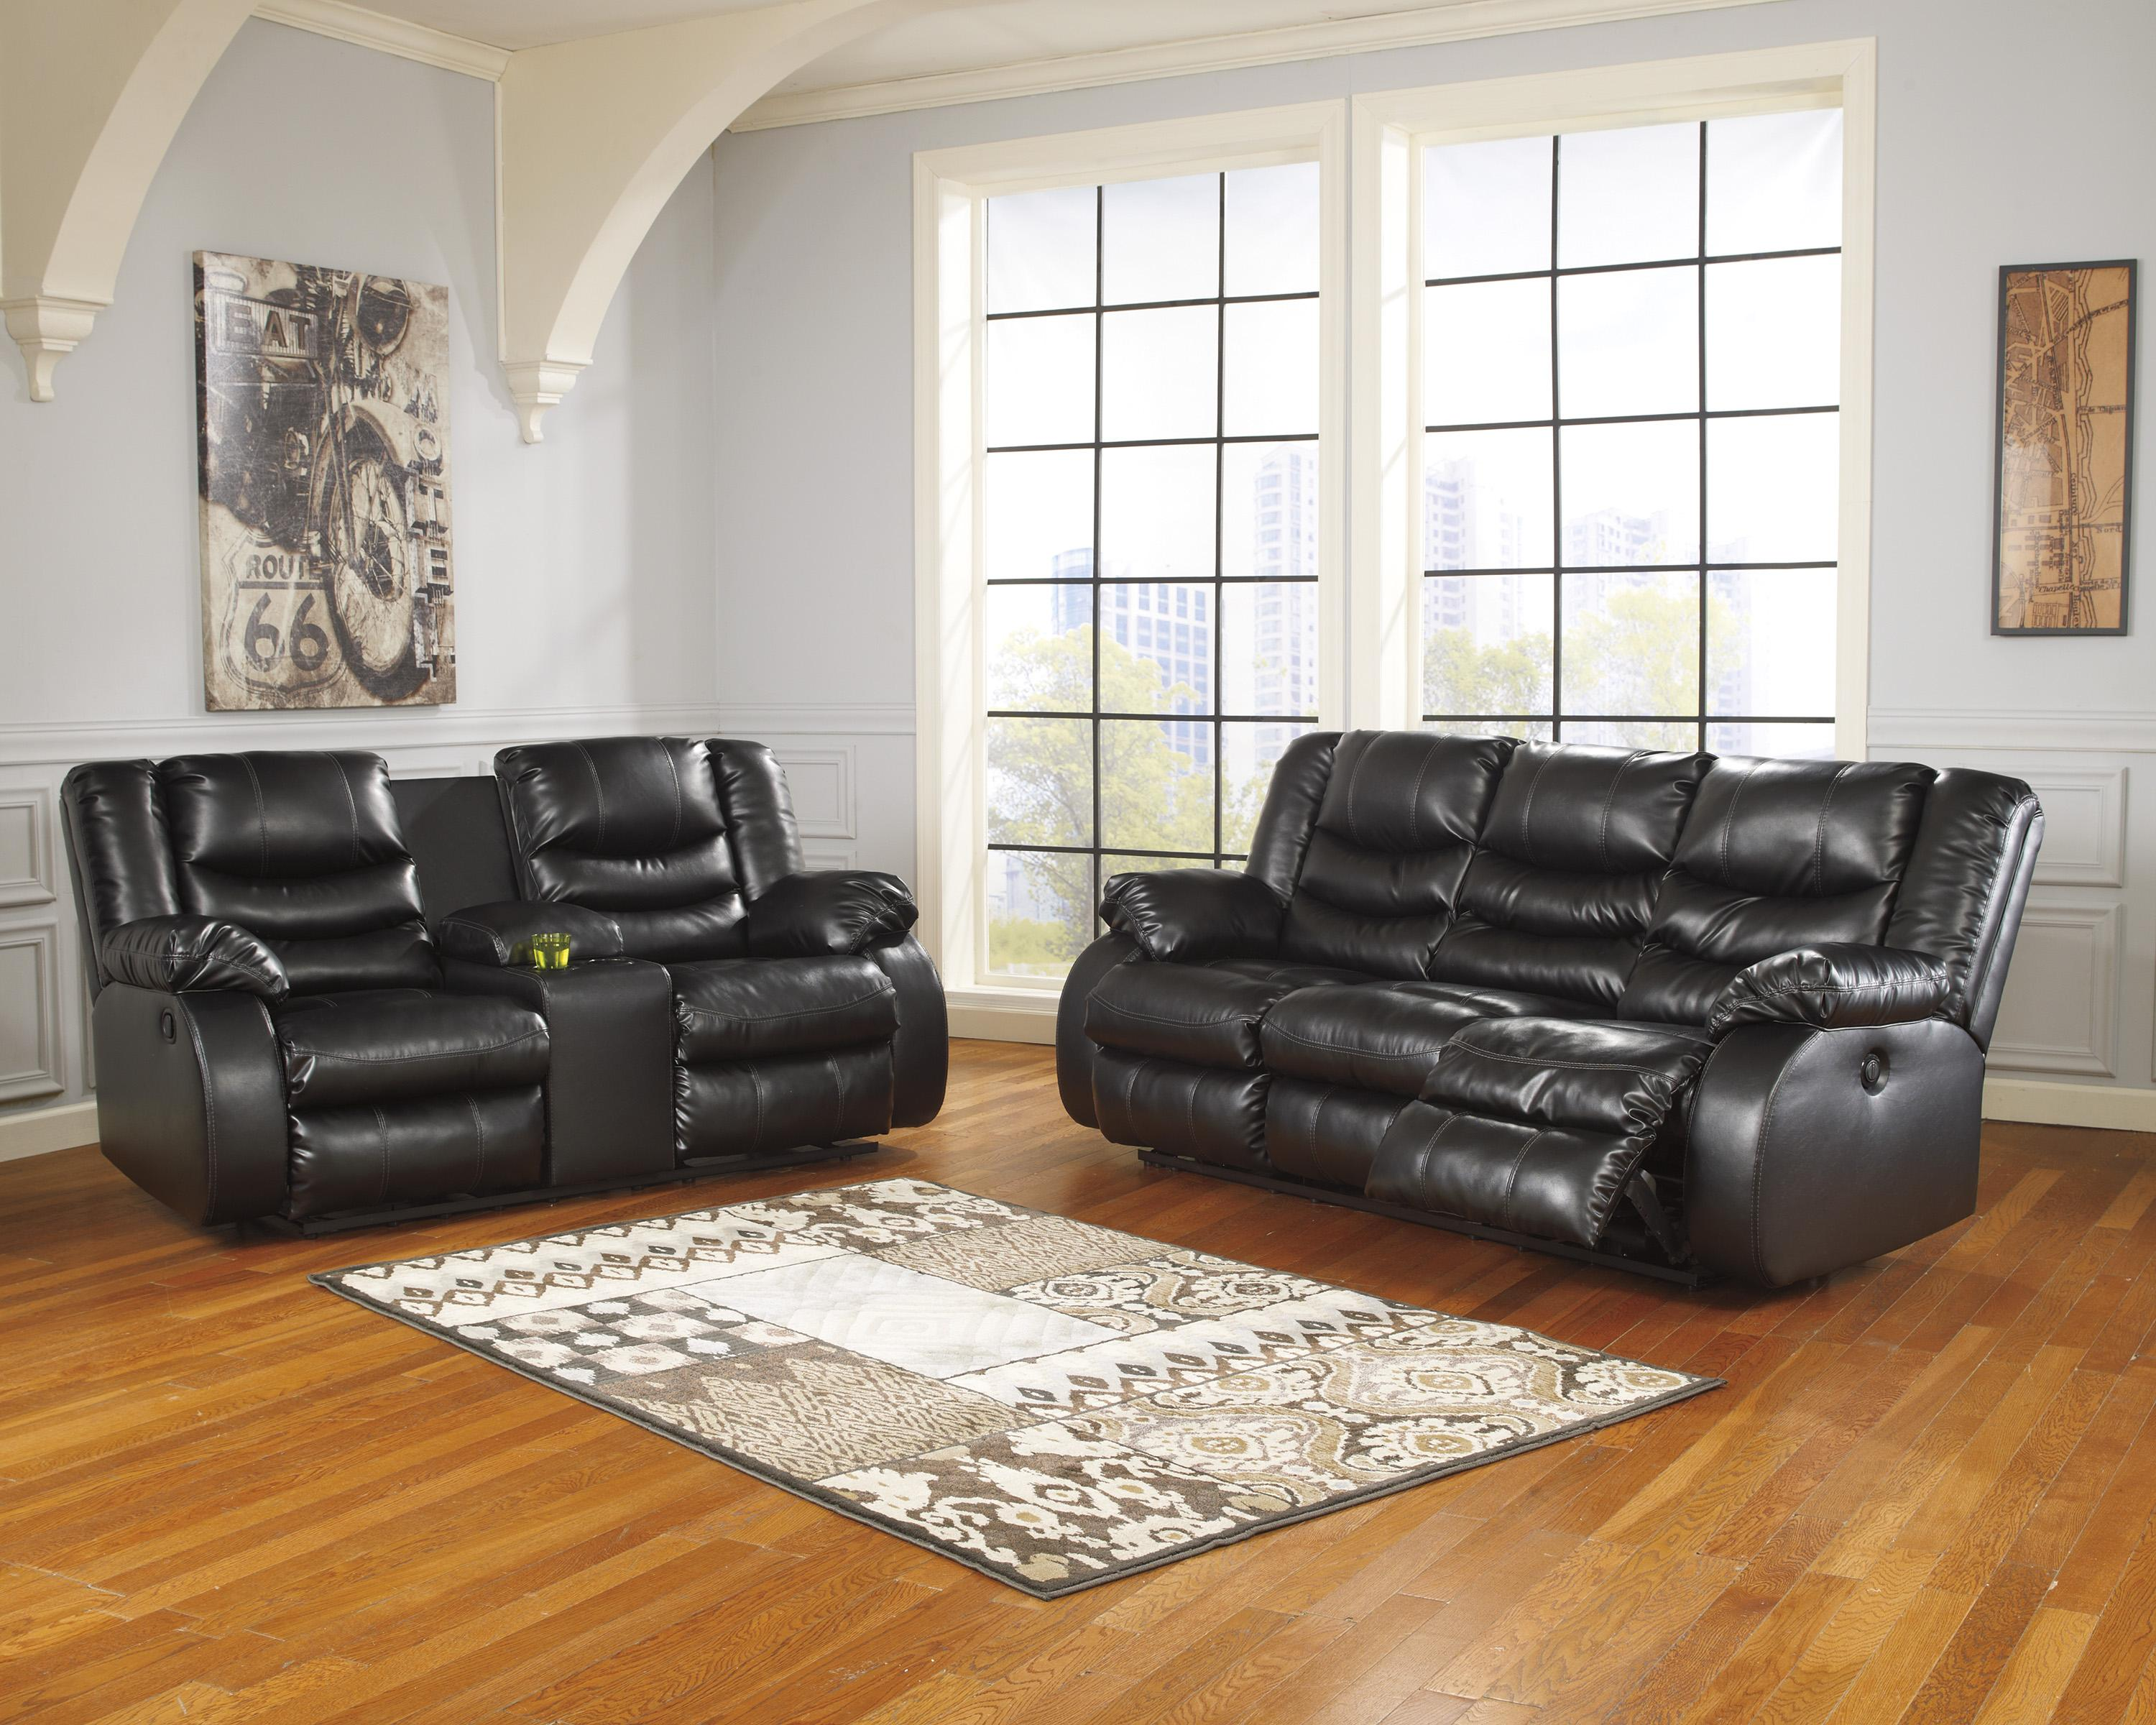 Benchcraft Linebacker DuraBlend - Black Contemporary Reclining Sofa with Pillow Arms - Wayside Furniture - Reclining Sofa & Benchcraft Linebacker DuraBlend - Black Contemporary Reclining ... islam-shia.org